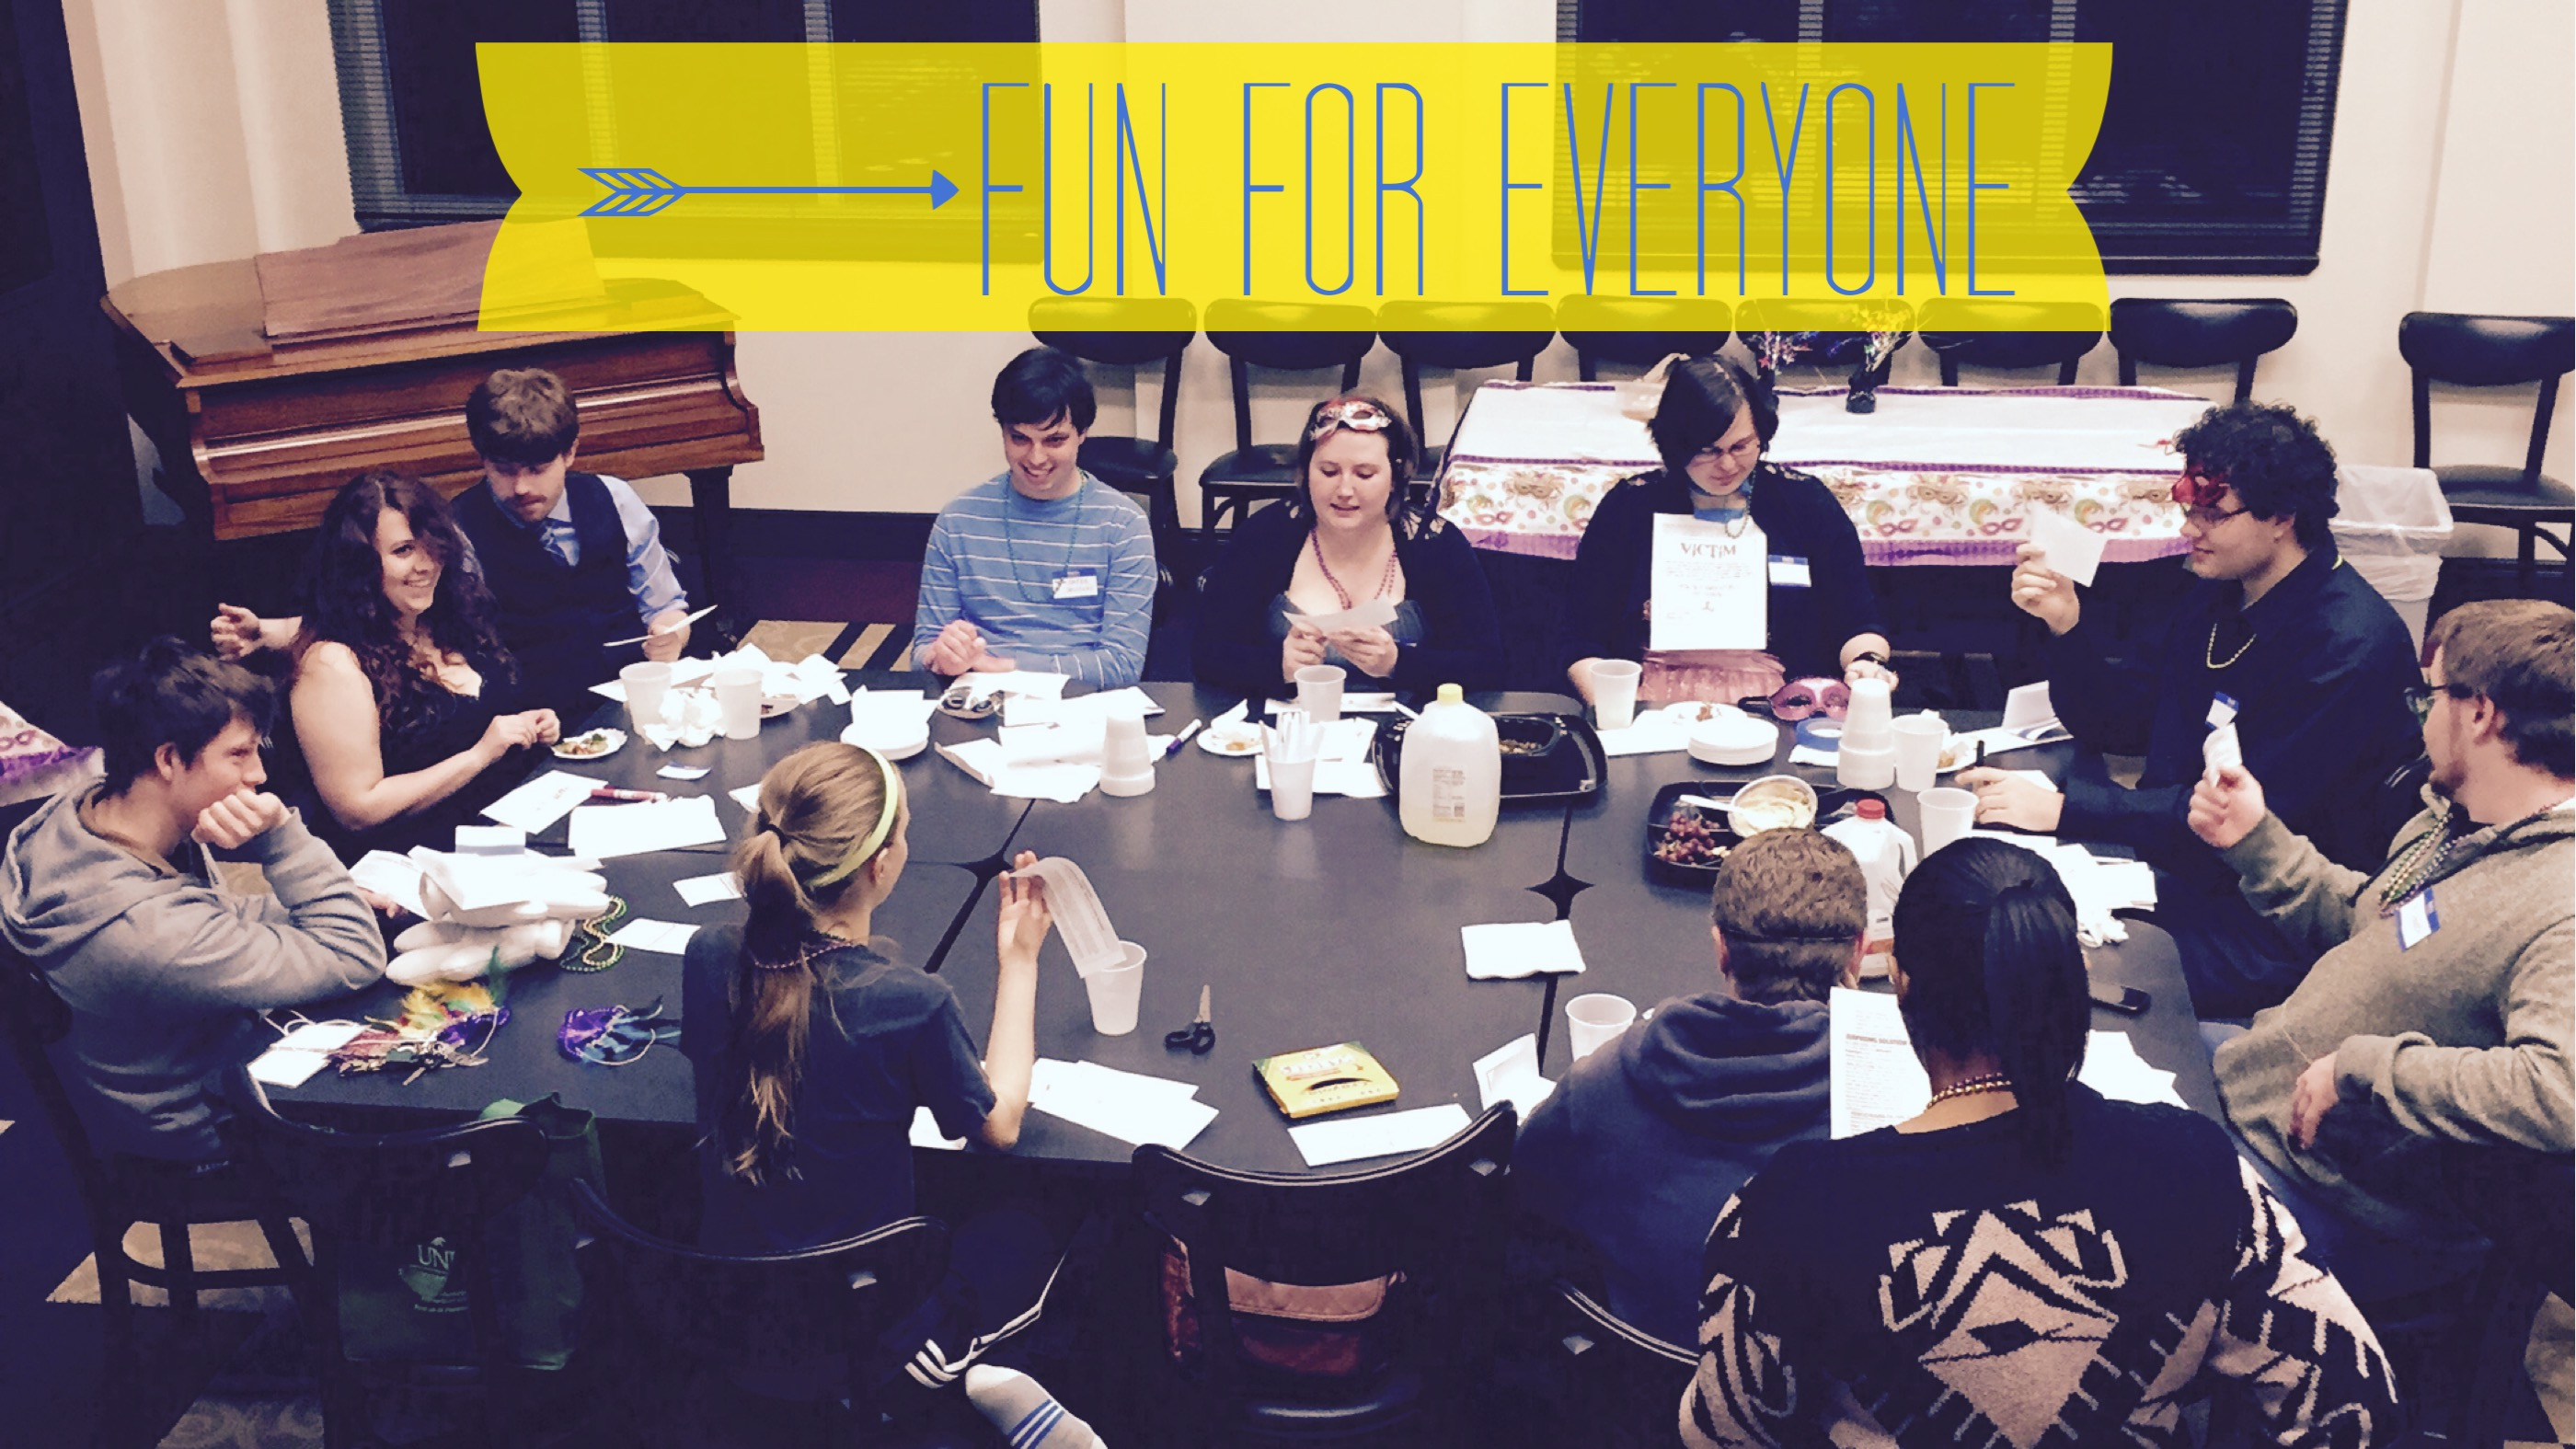 young people sitting at a big table working together and hanging out with the words fun for everyone on top